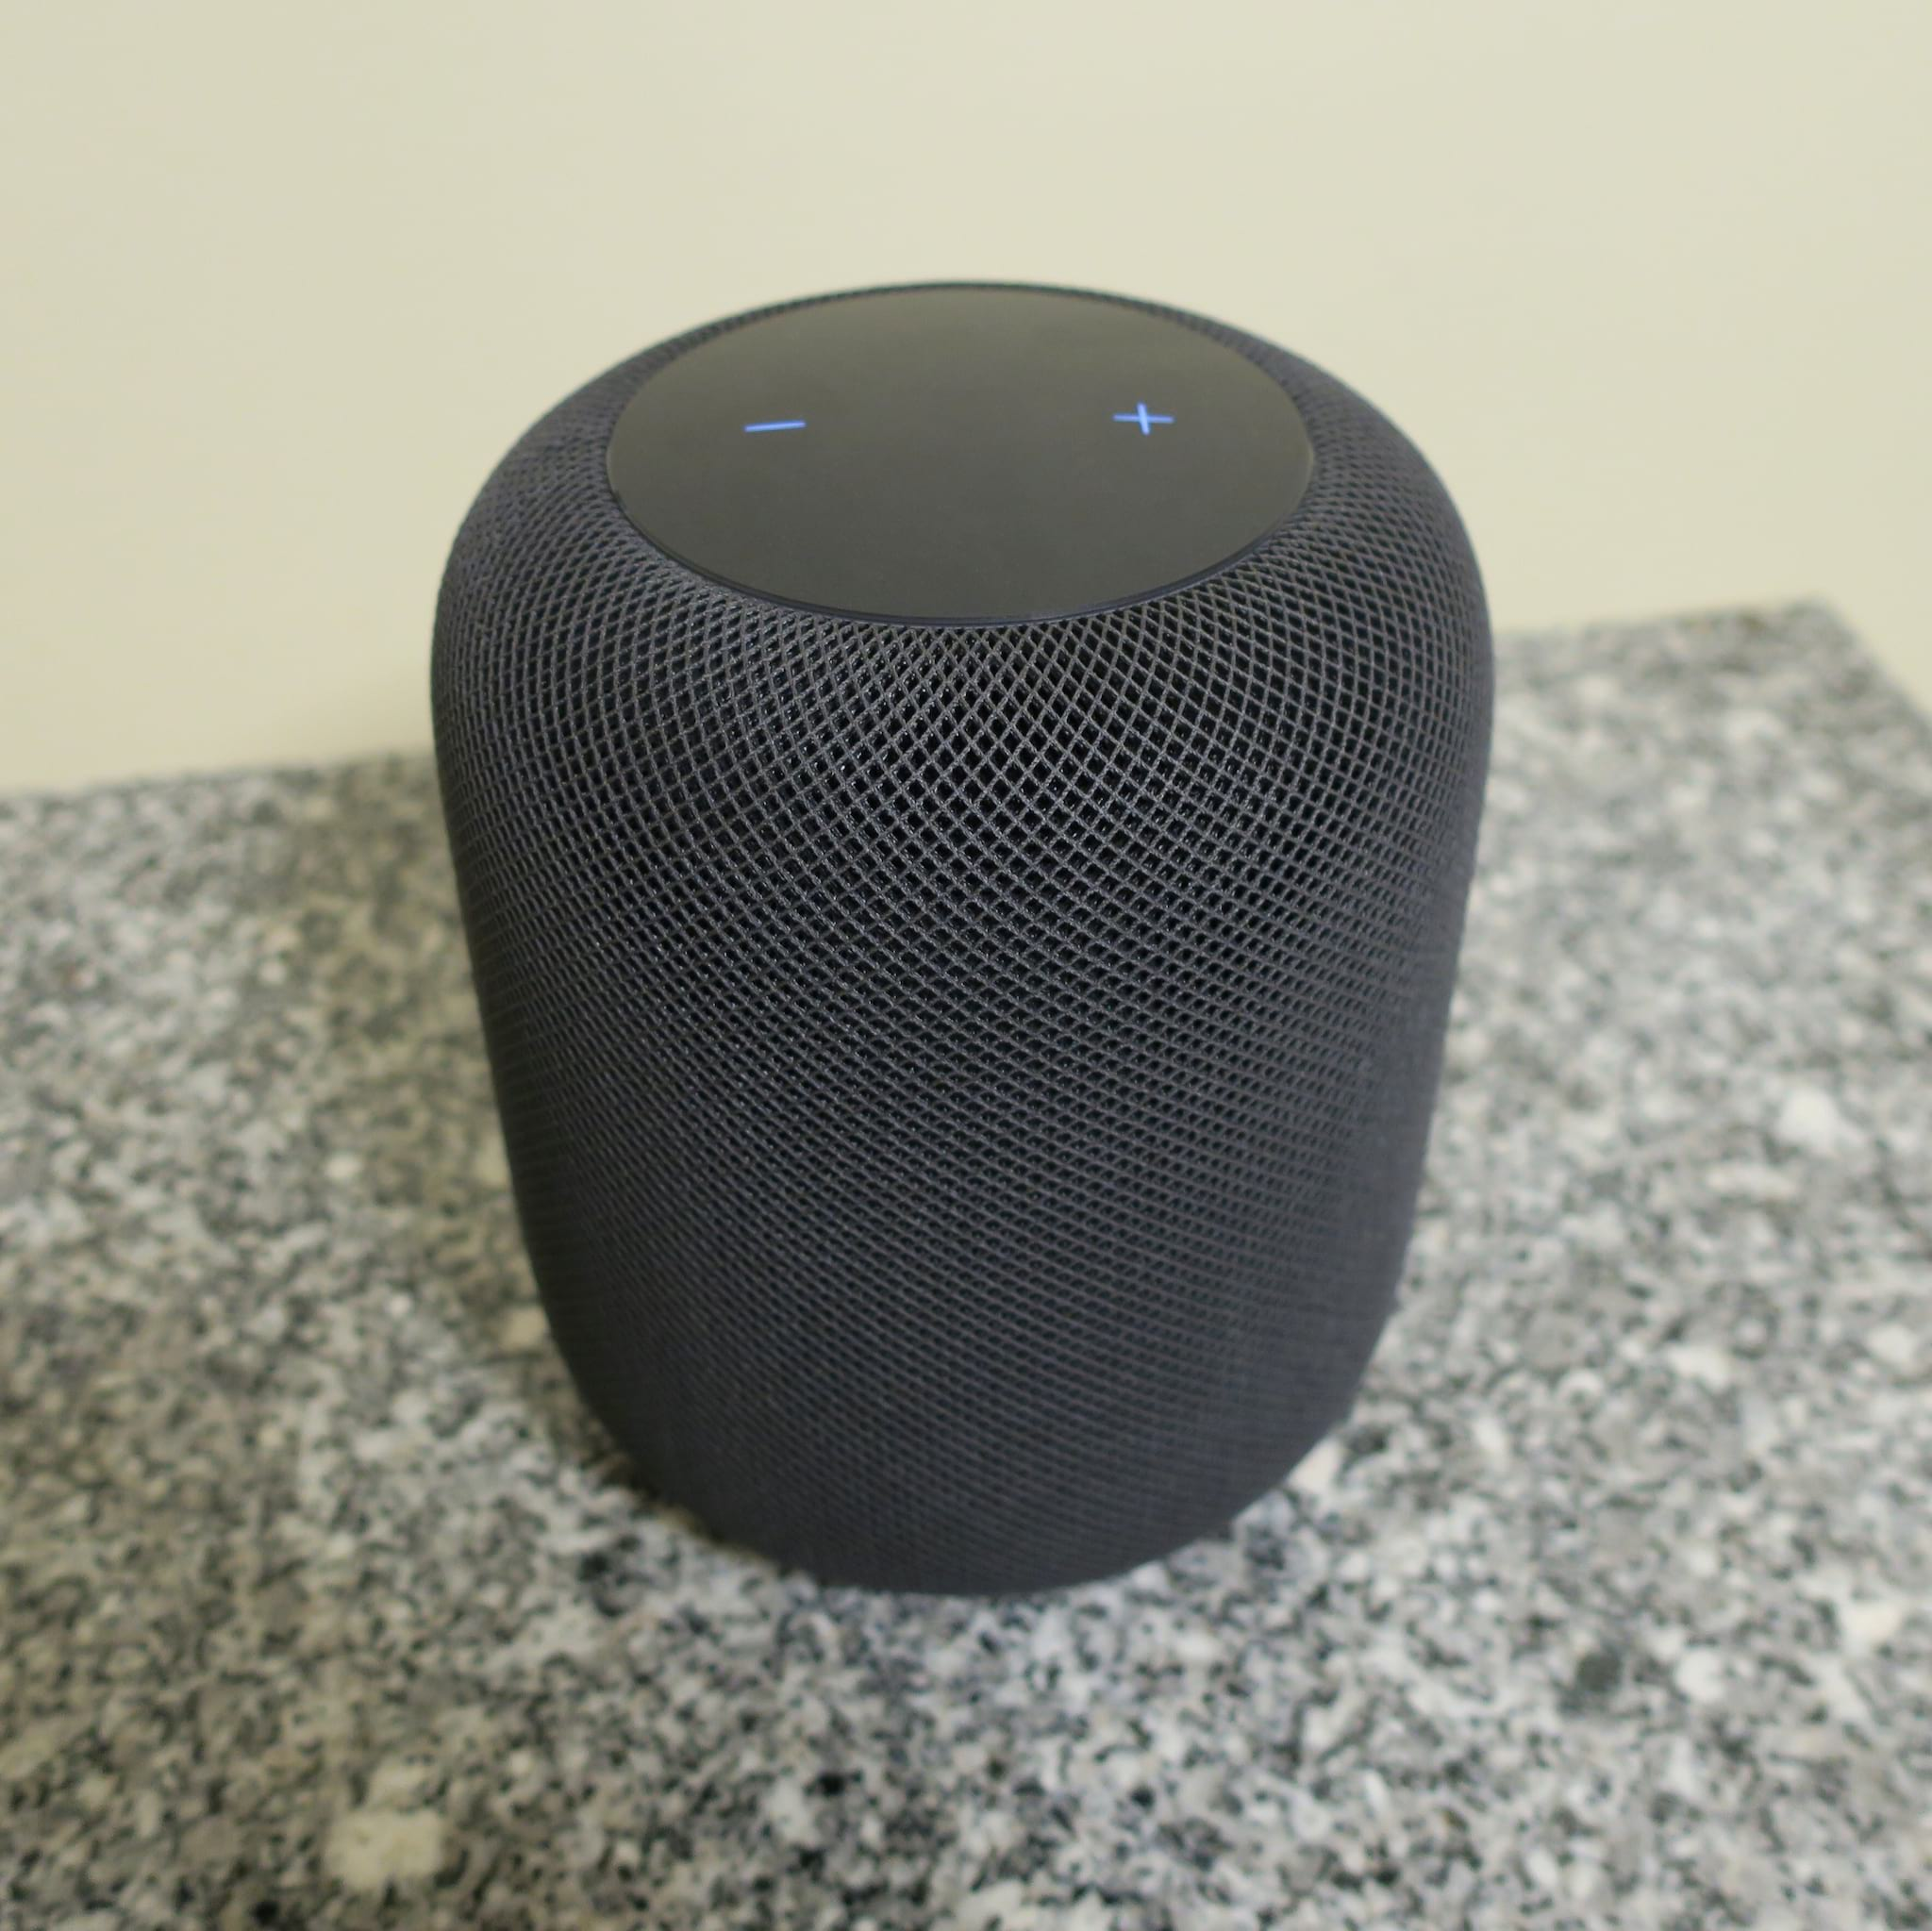 HomePod During Playback